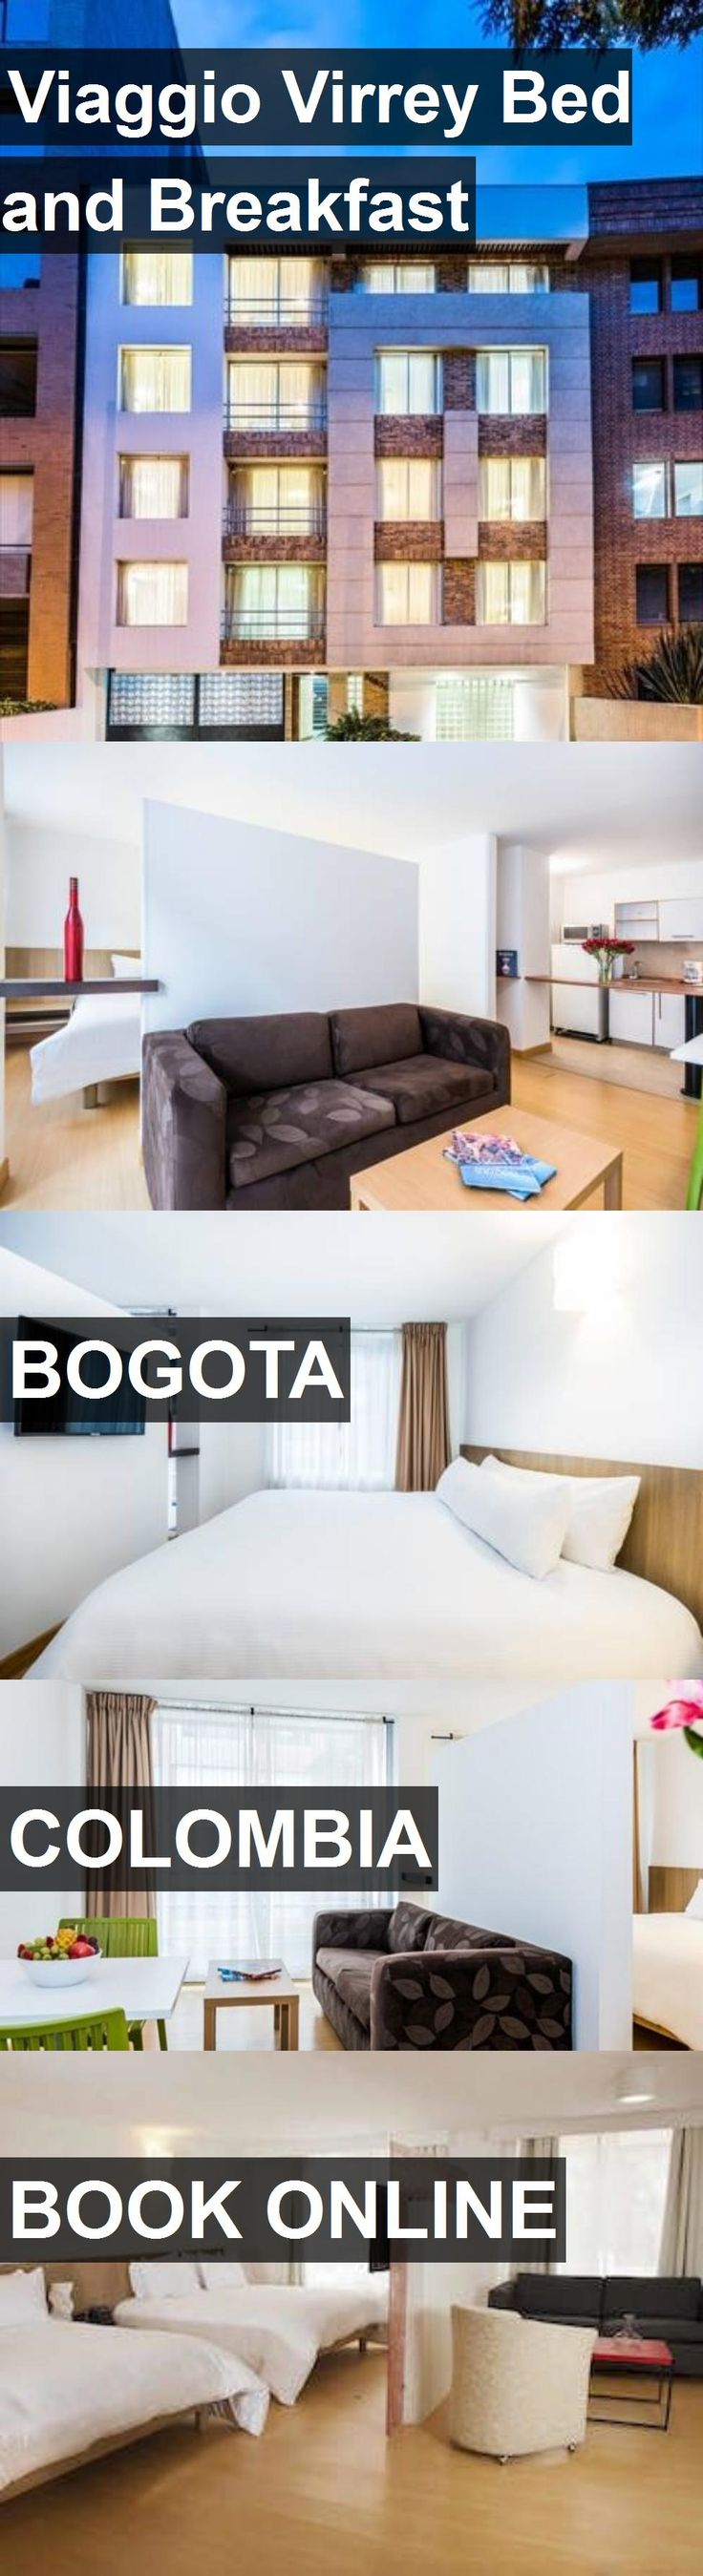 Hotel Viaggio Virrey Bed and Breakfast in Bogota, Colombia. For more information, photos, reviews and best prices please follow the link. #Colombia #Bogota #travel #vacation #hotel